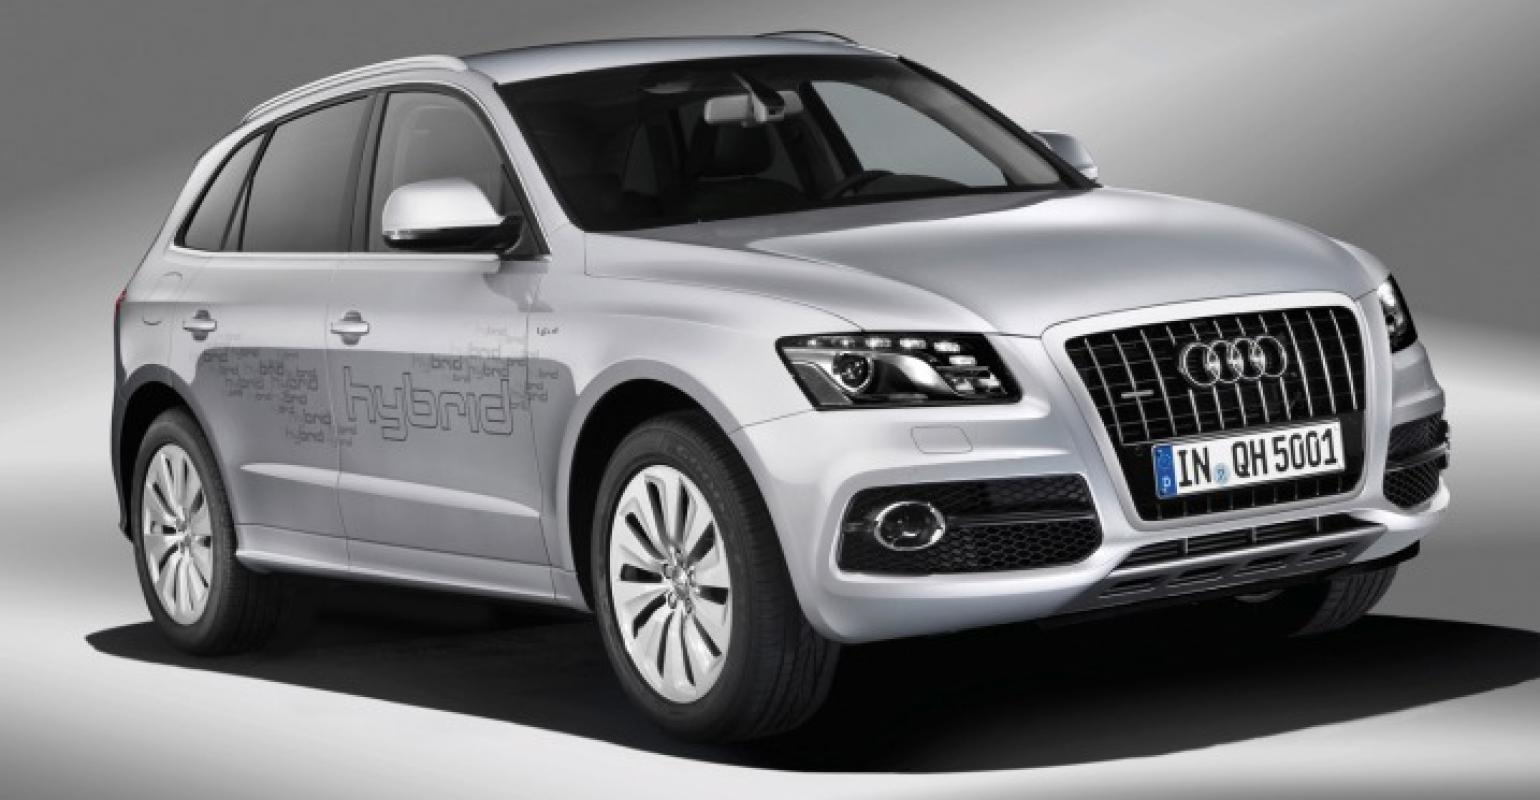 Audi To Position Q Diesel For Performance Hybrid For Fuel Economy - Audi q5 diesel